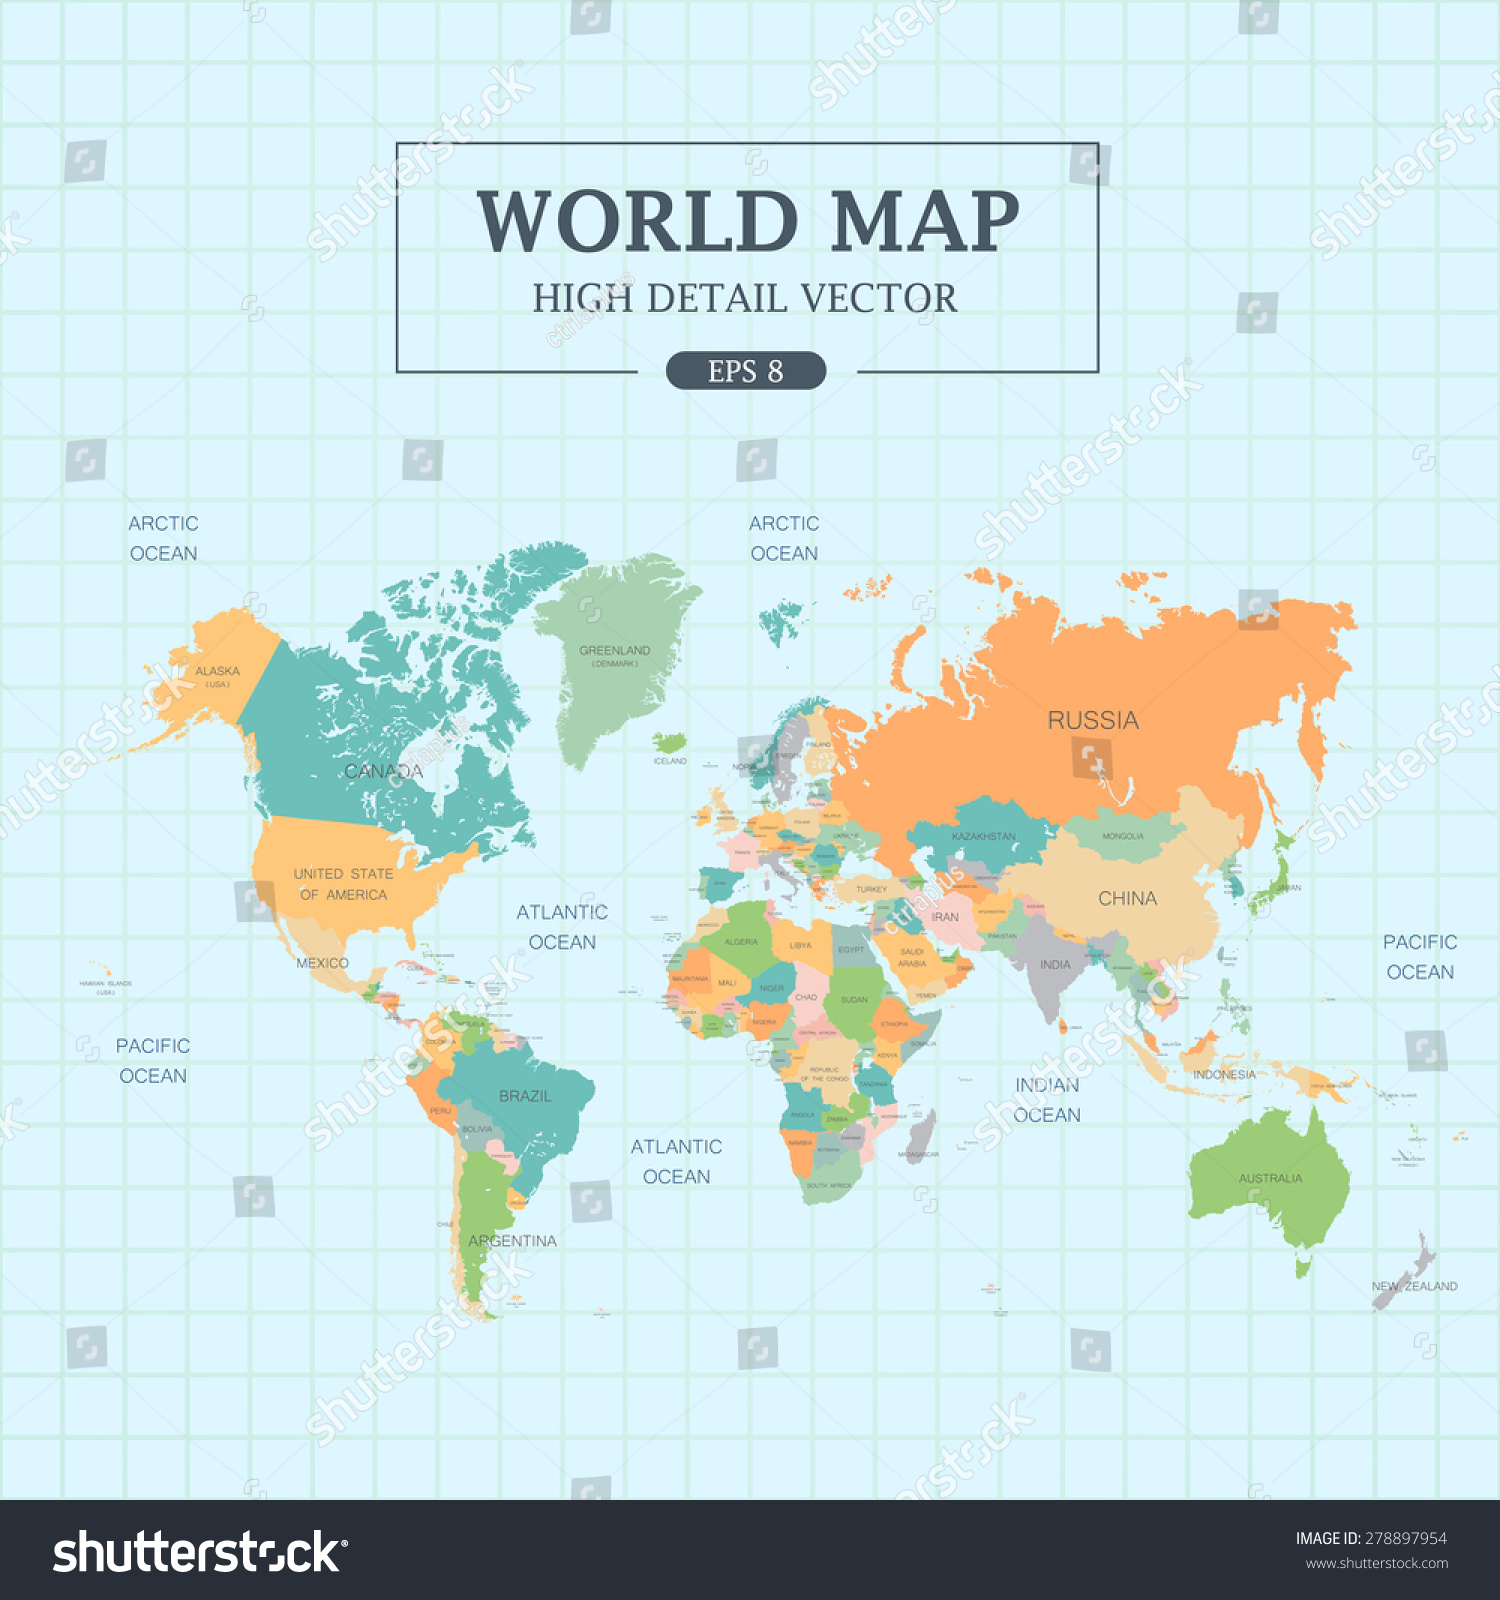 World map full color high detail stock vector 278897954 shutterstock world map full color high detail separated all countries vector illustration gumiabroncs Gallery